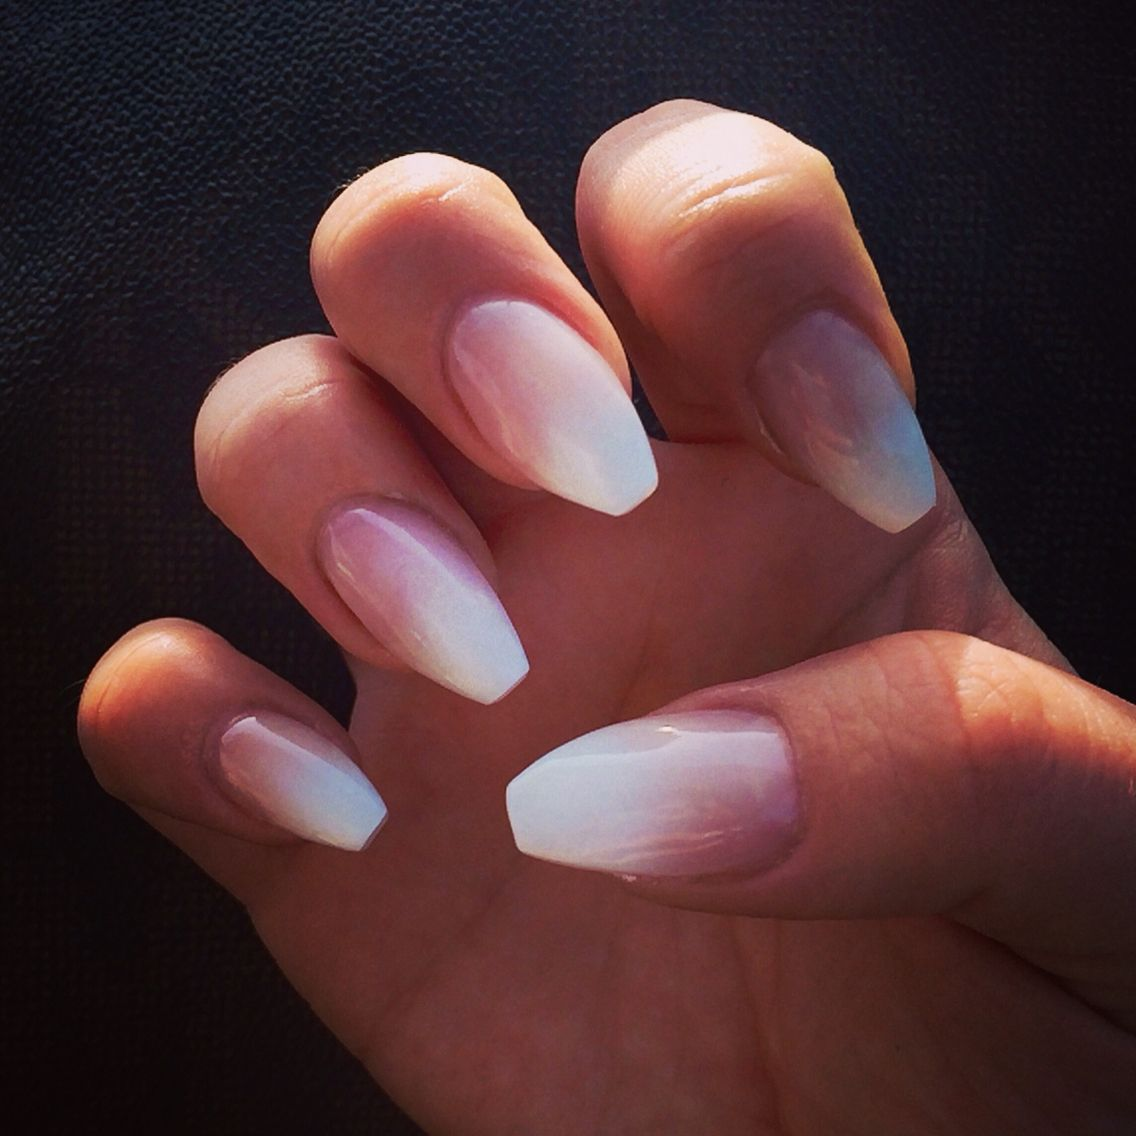 French ombré coffin nails | Nails | Pinterest | Coffin nails, Nail ...